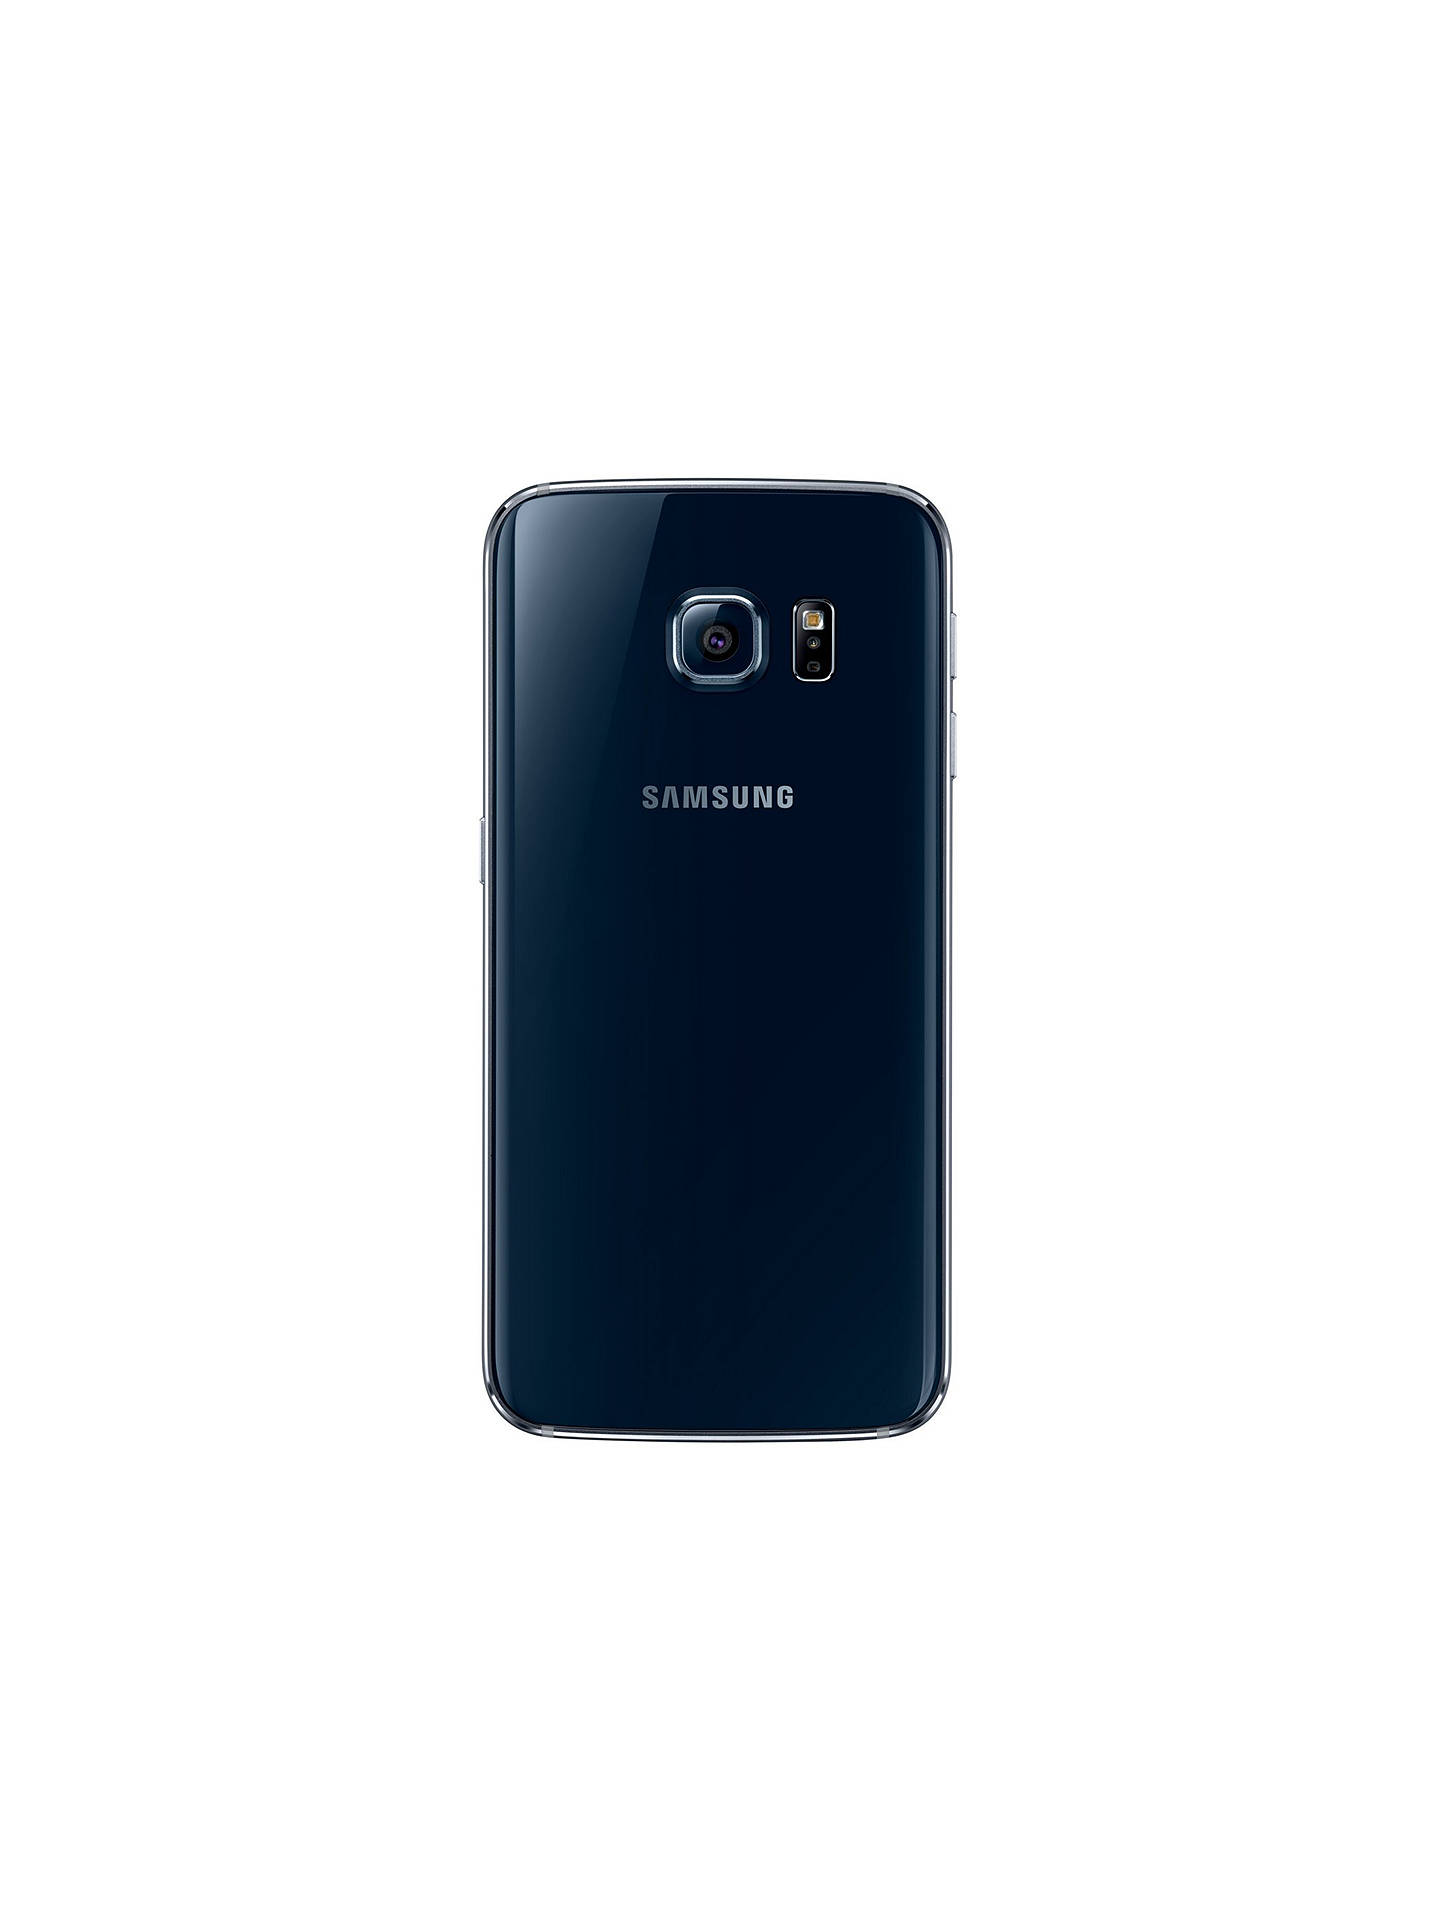 Samsung Galaxy S6 Edge Smartphone Android 51 4g Lte Sim Free Note 32gb Buysamsung